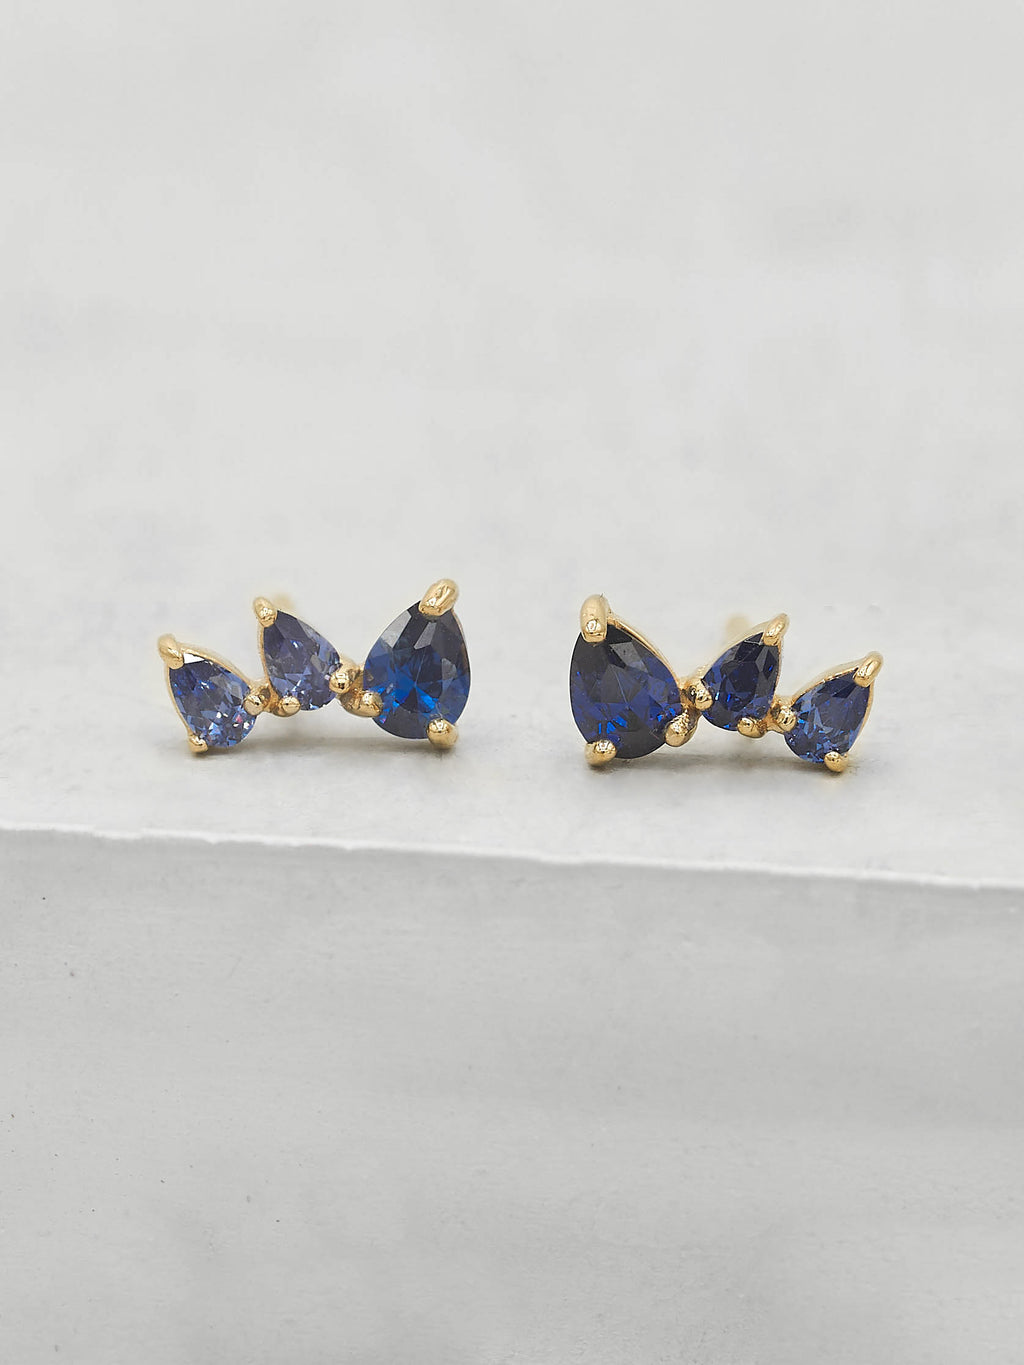 Gold Plated 3 Stones Blue Sapphire Pear Shape Cubic Zirconia CZ  Stud Earrings by The Faint Hearted jewelry